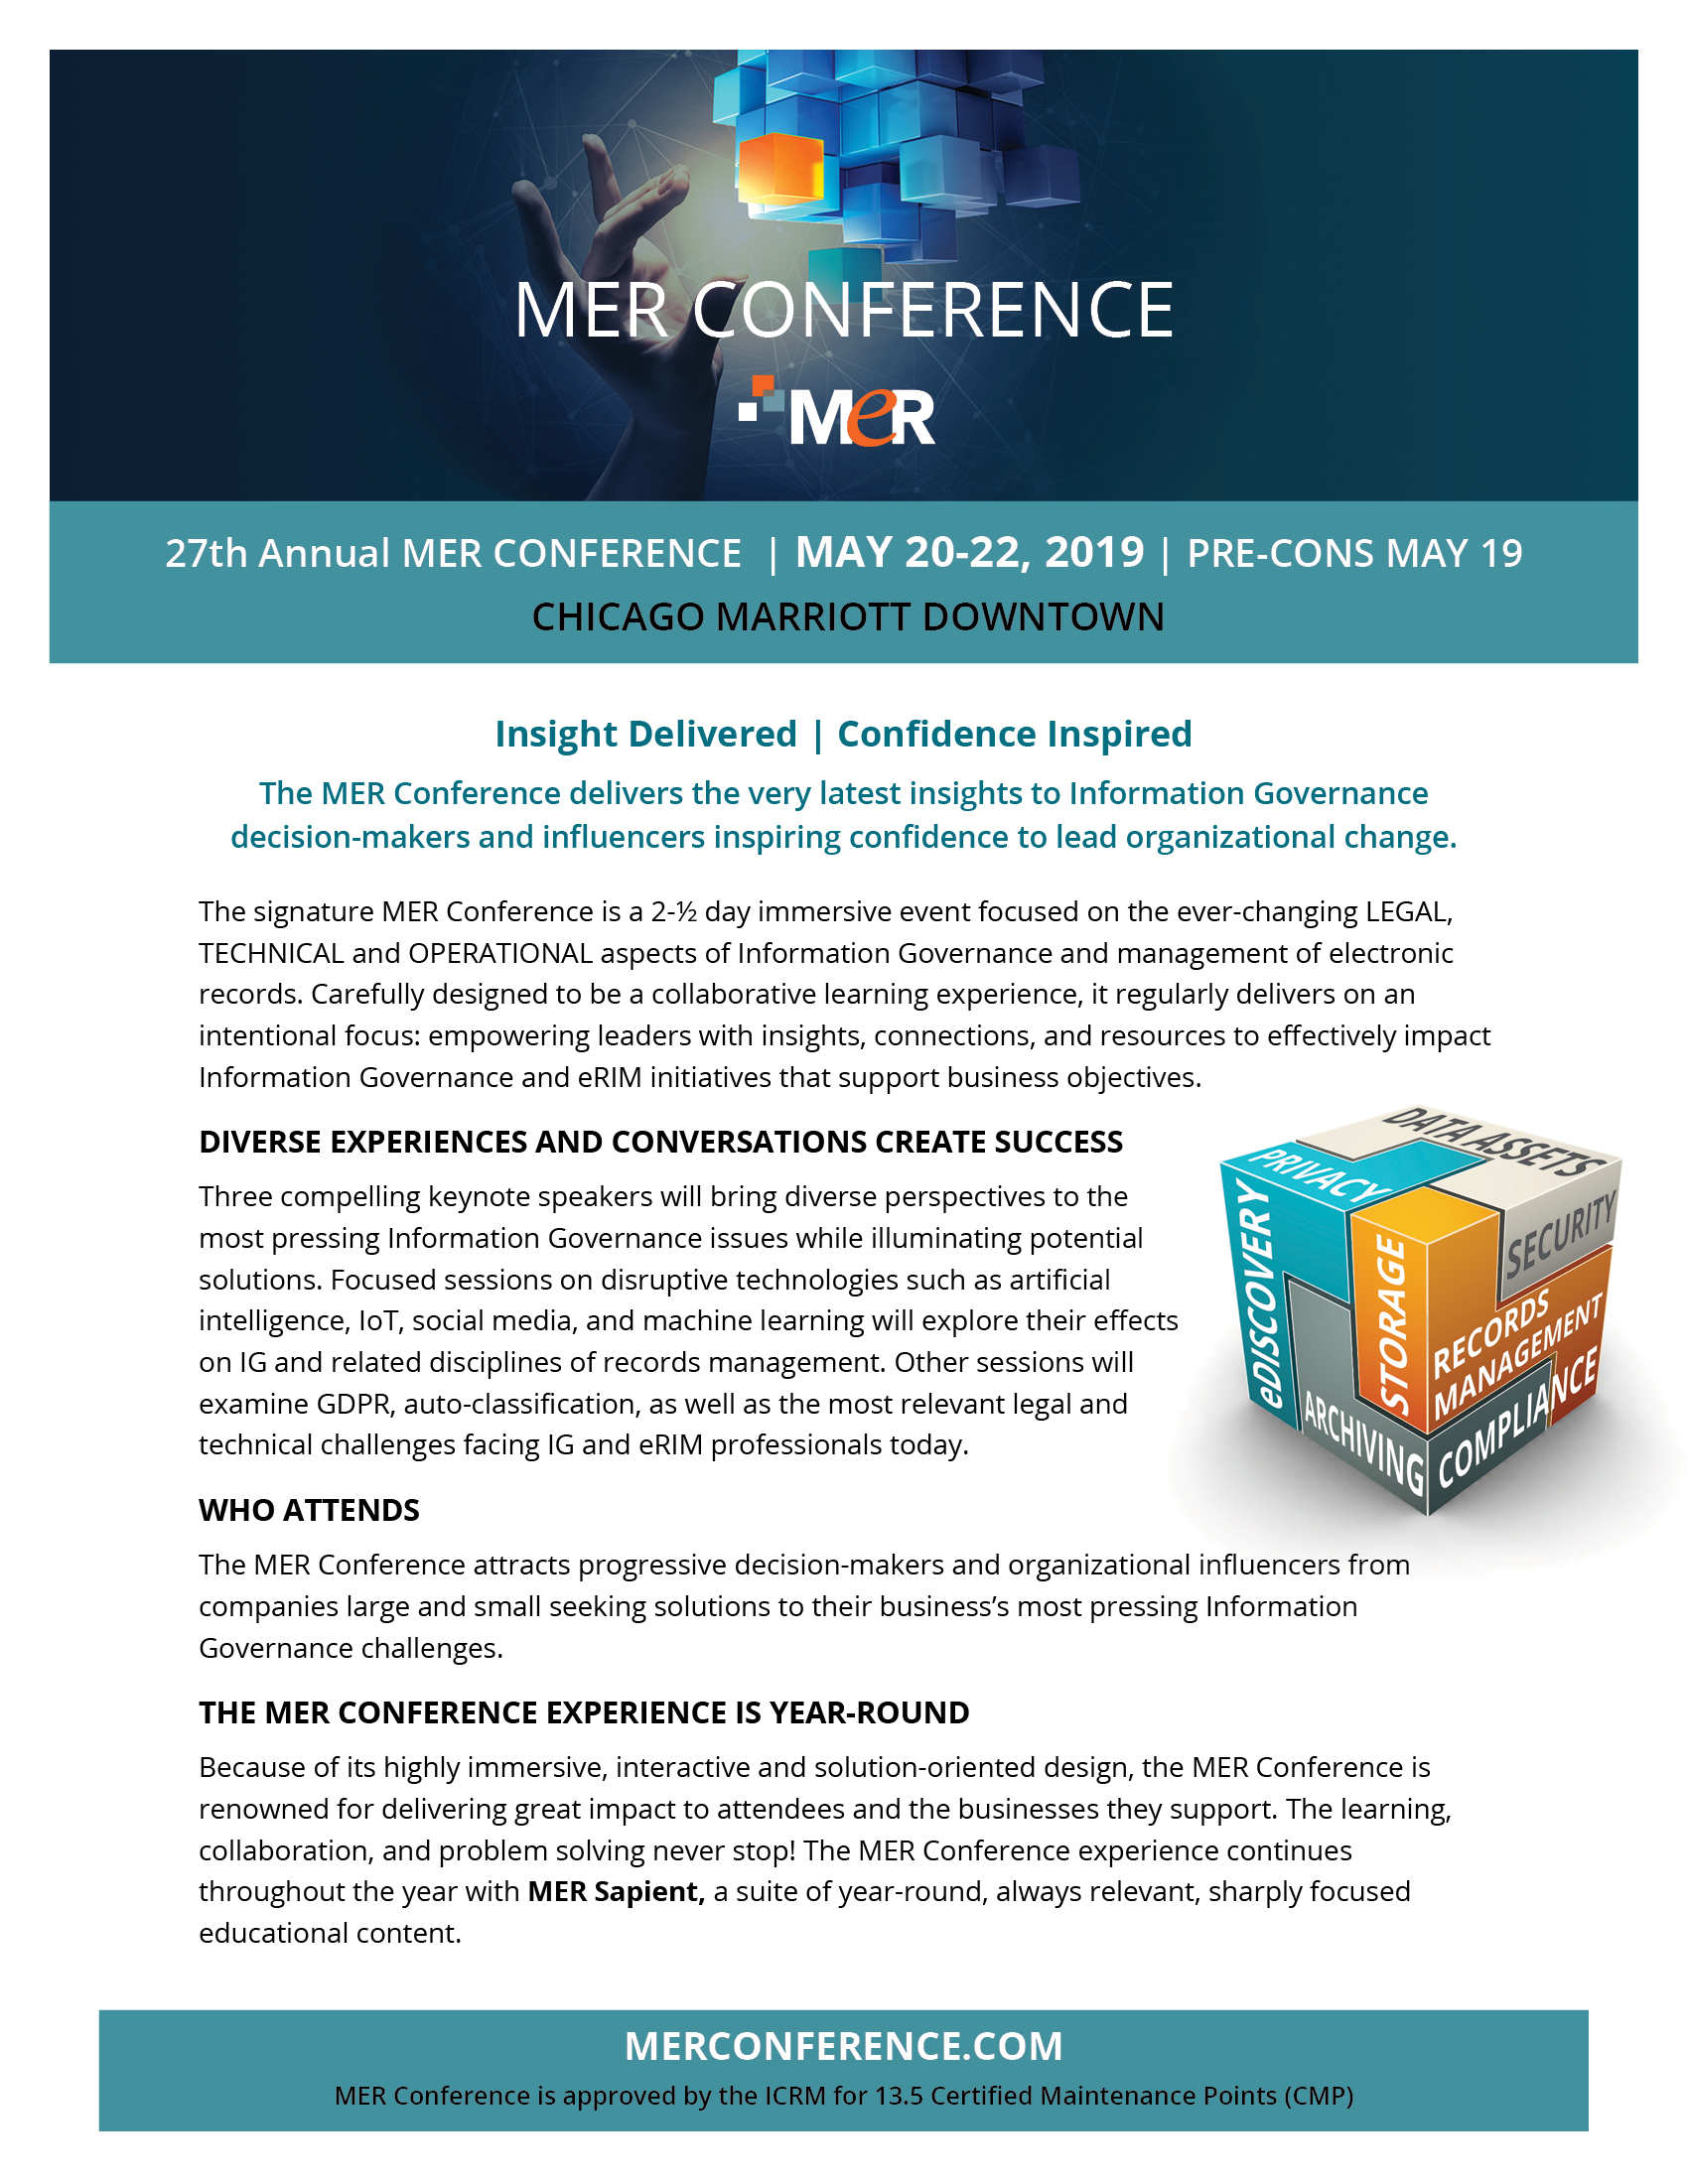 Home | MER CONFERENCE